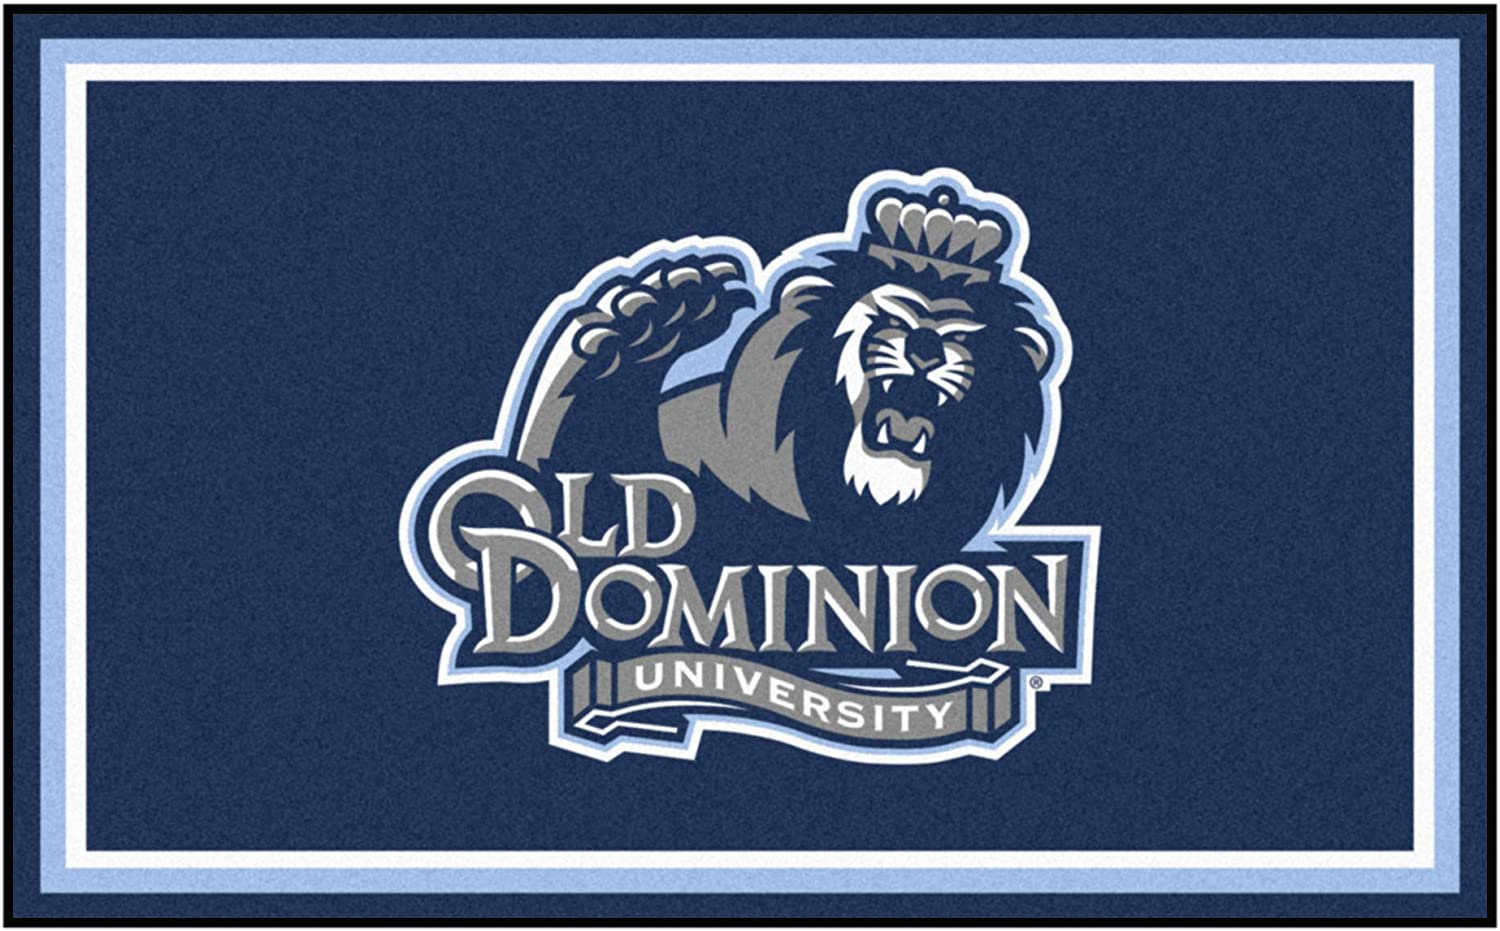 Old Dominion University 4ft. x Plush 6ft. Area Rug Year-end gift Online limited product